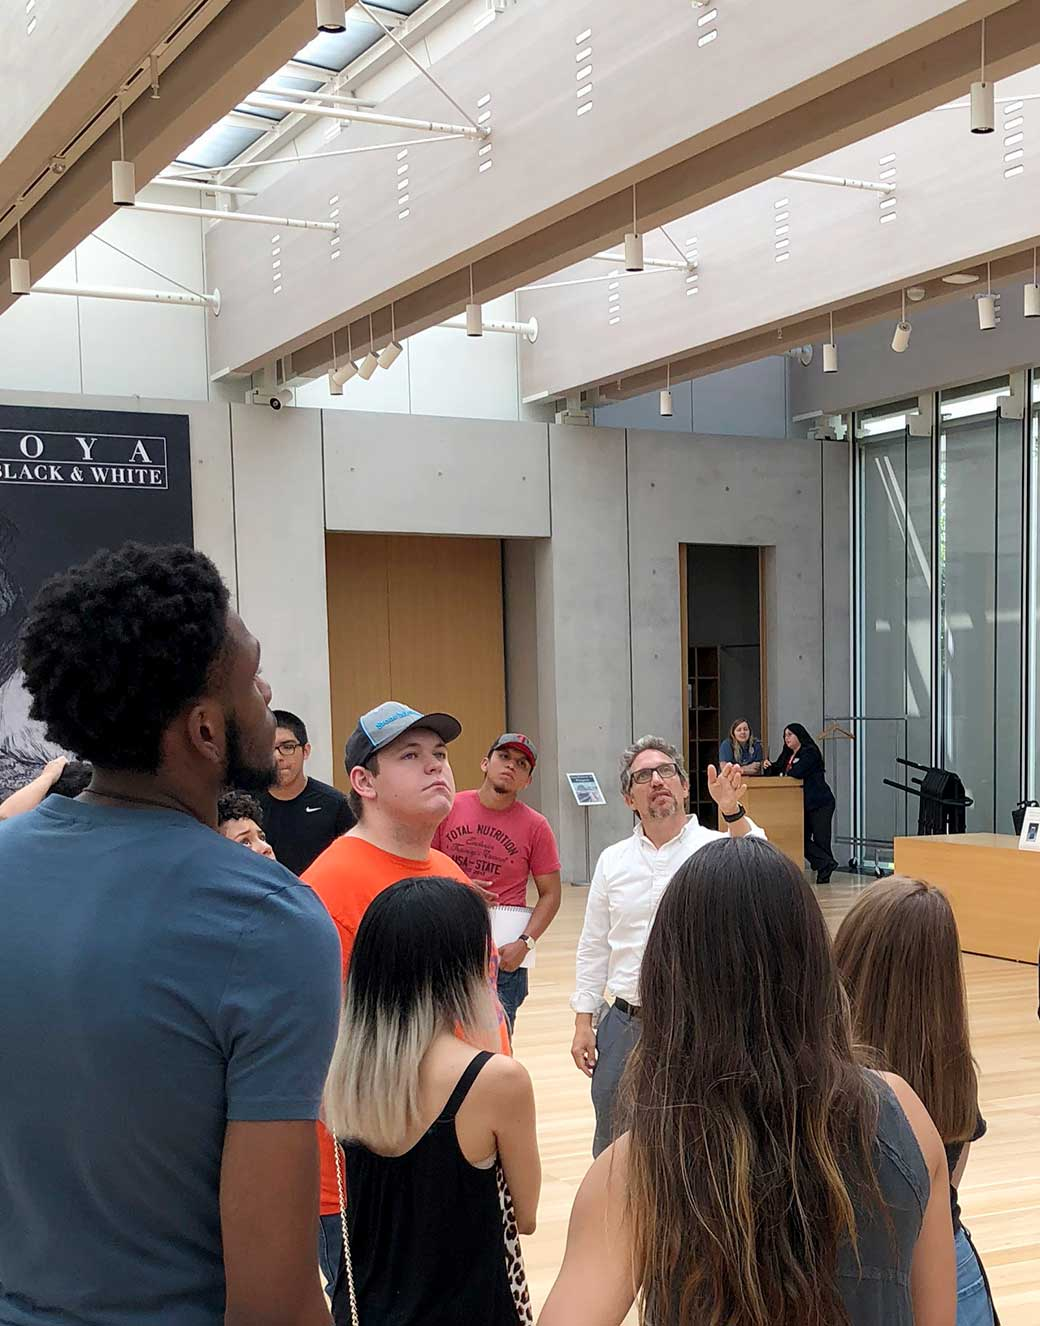 UTA architectural engineering students tour the Kimball Art Museum